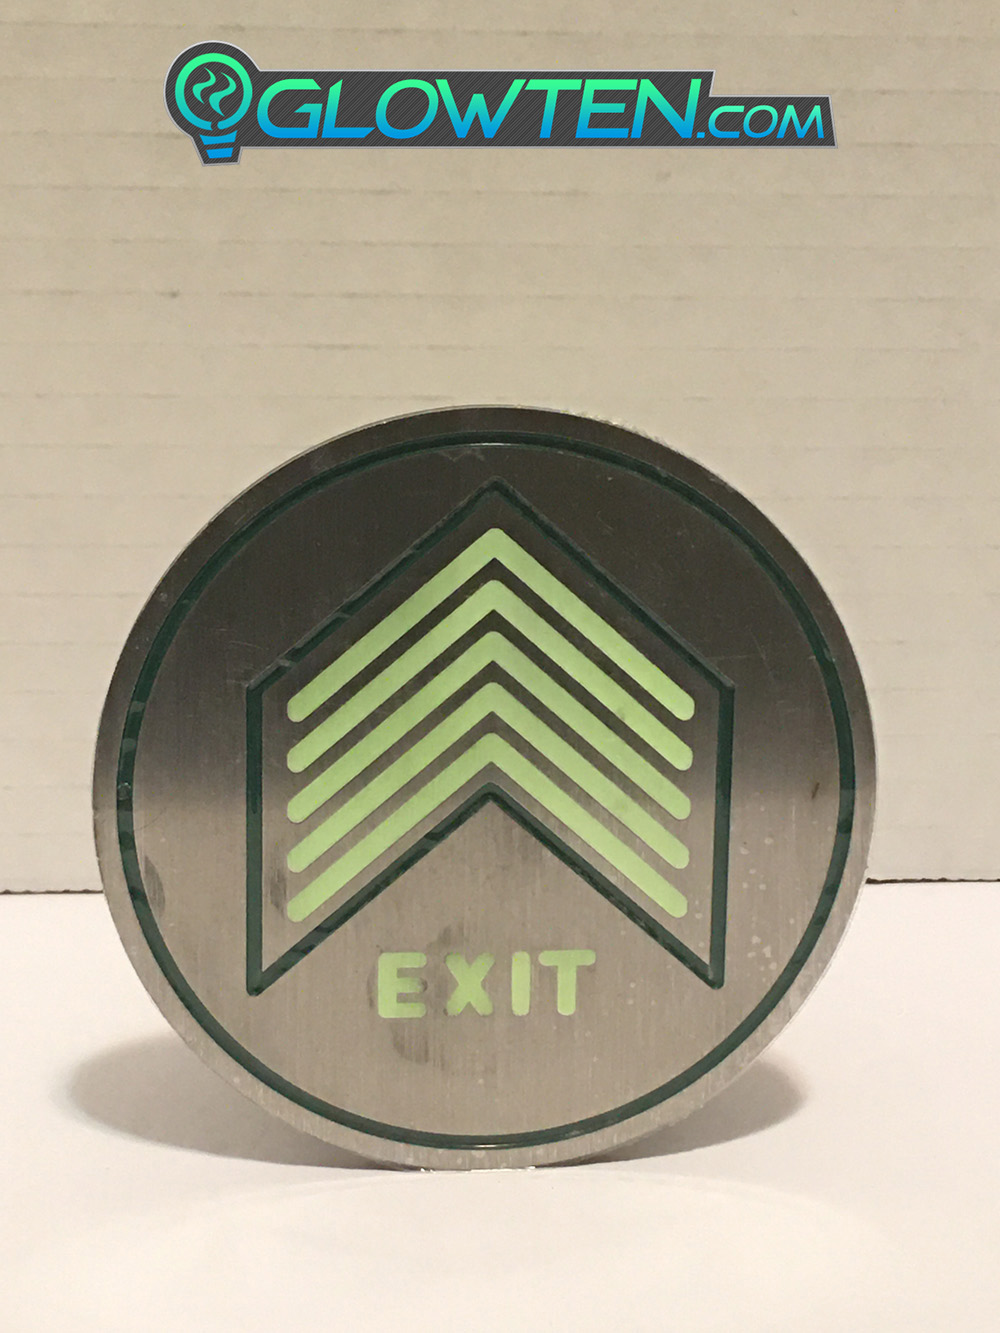 GLOWTEN.com - Glow In The Dark Five Small Arrows Ground Directional Exit Safety Sign Stainless Steel Plate Round Circle Army Badge Signs Light Up Right Away In Dark Or Smokey Rooms With Non Sufficient Lighting To See Easily picture photo cap preview pic 6